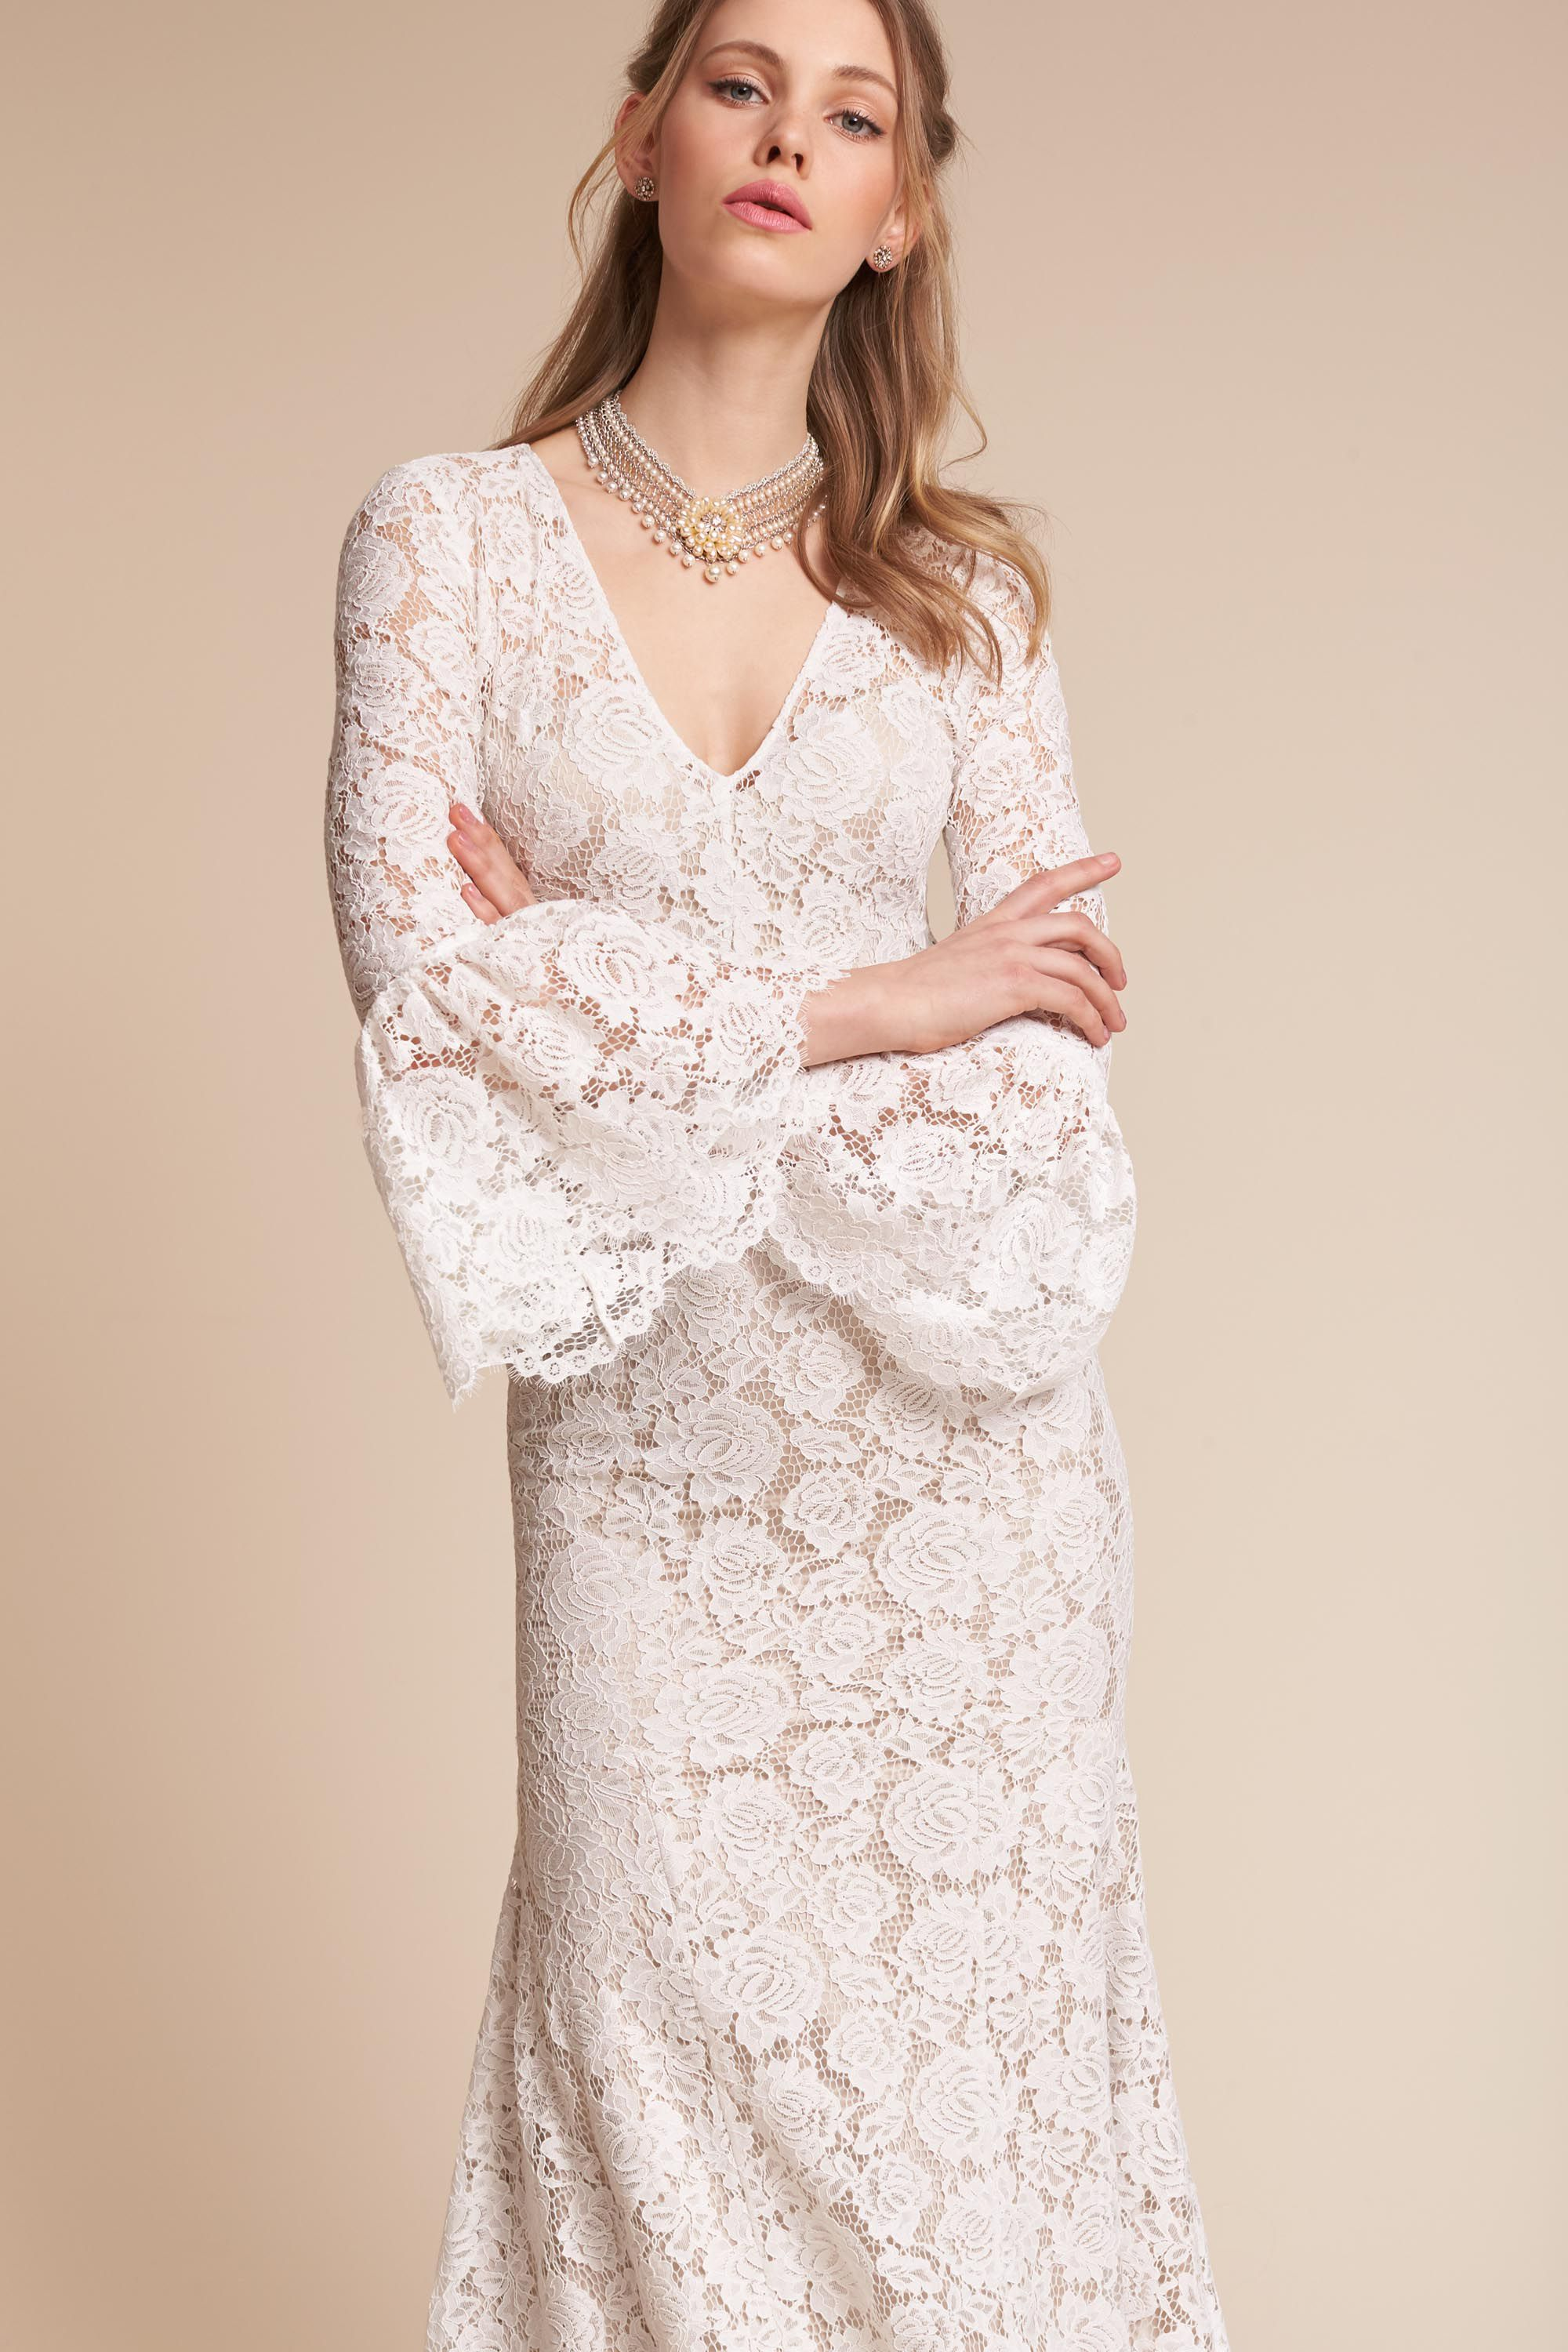 Wedding Dresses With Sleeves wedding dresses with sleeves long lace cap sleeve bhldn harbor gown gown